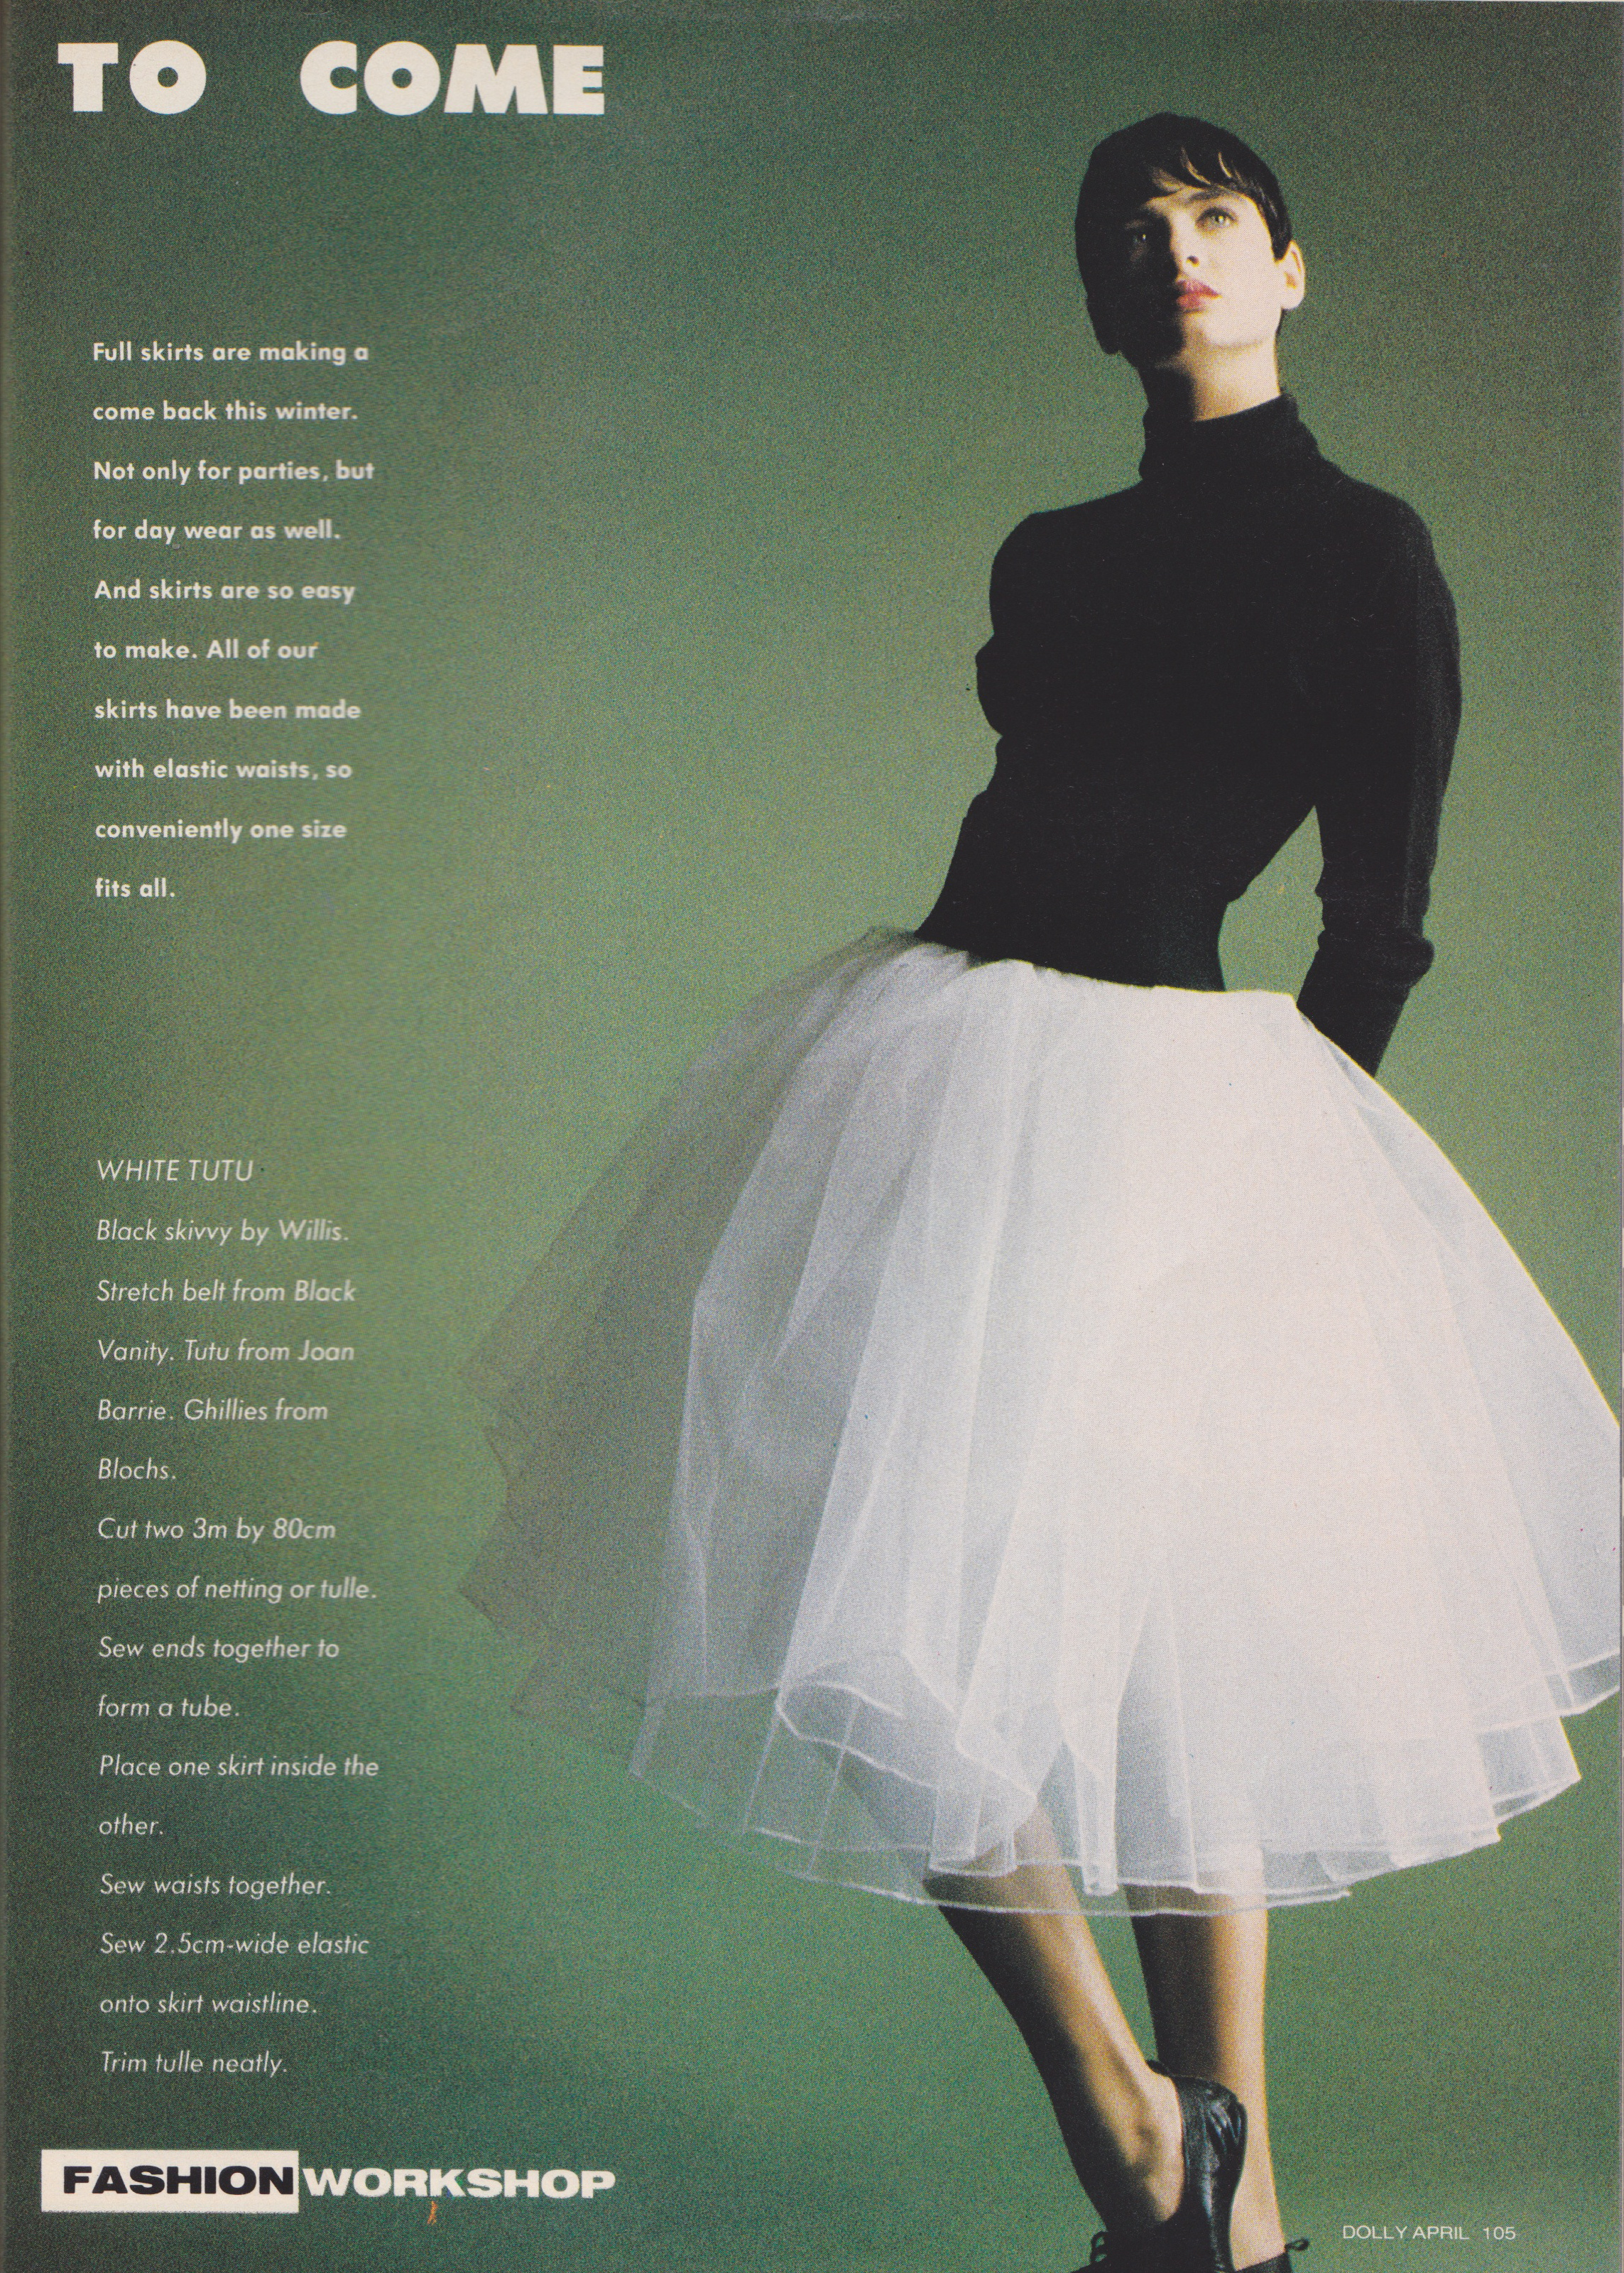 Dolly April 1987 | The Shape Of Skirts To Come (Belinda Riding) 02.jpeg